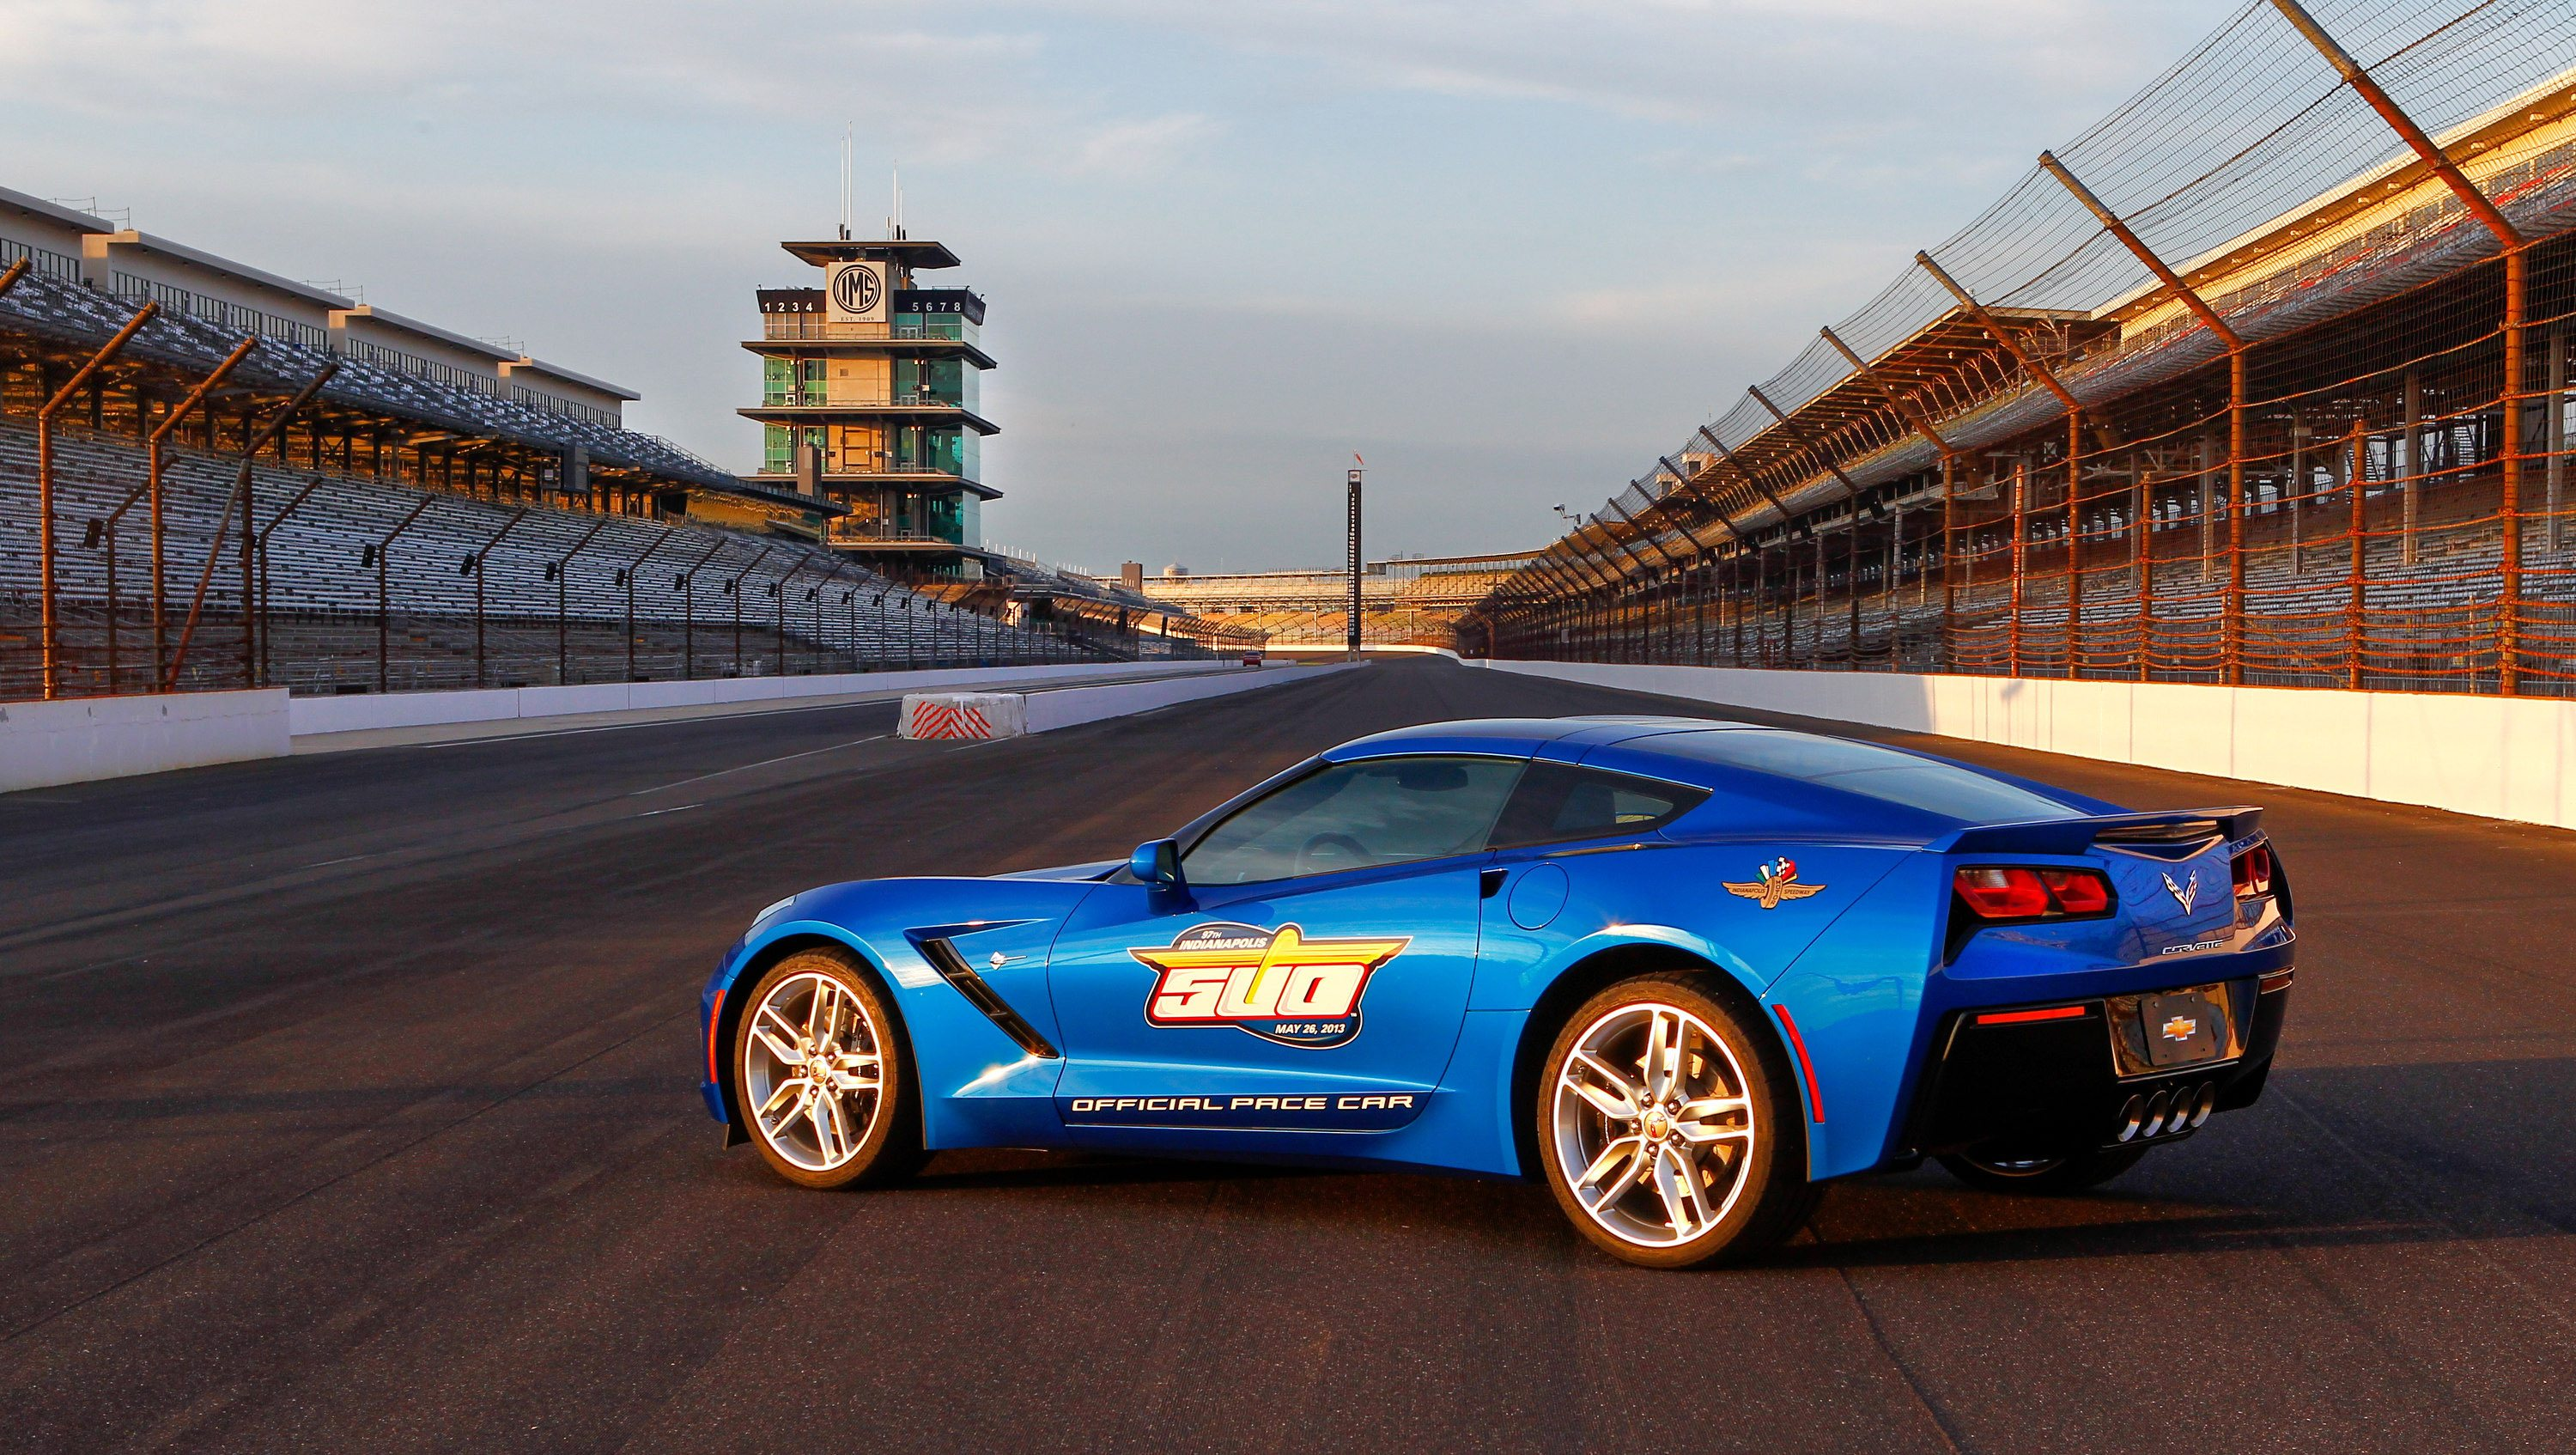 2014 Corvette Stingray 2013 Indy 500 Jim Harbaugh